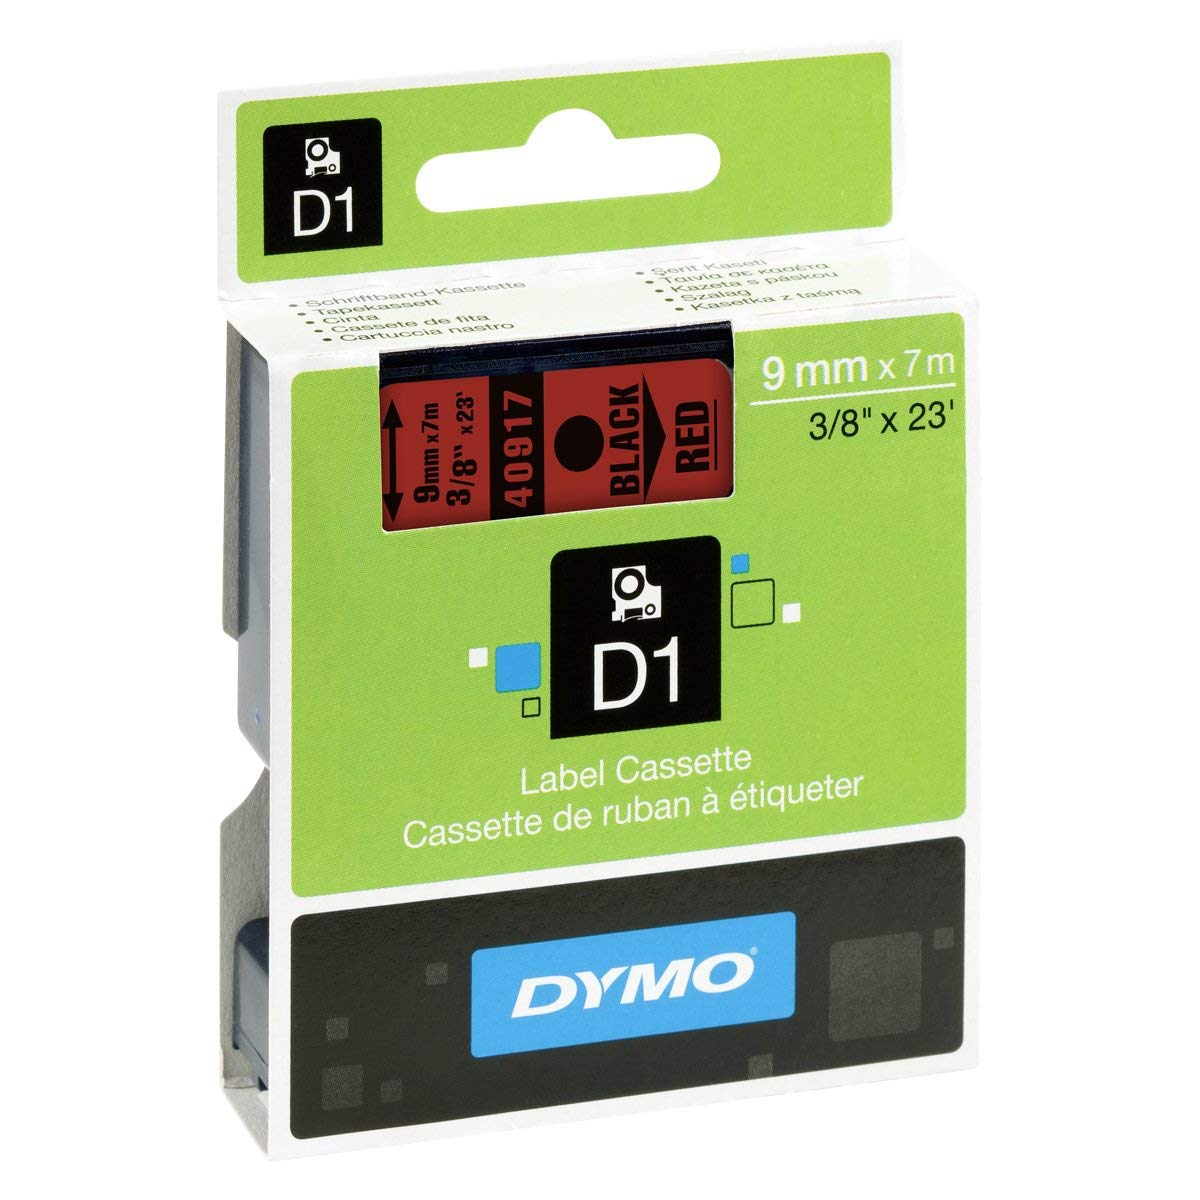 Dymo S0720720 (40917) D1 Standard Tape 9mm x 7m - Black on Red (pc)